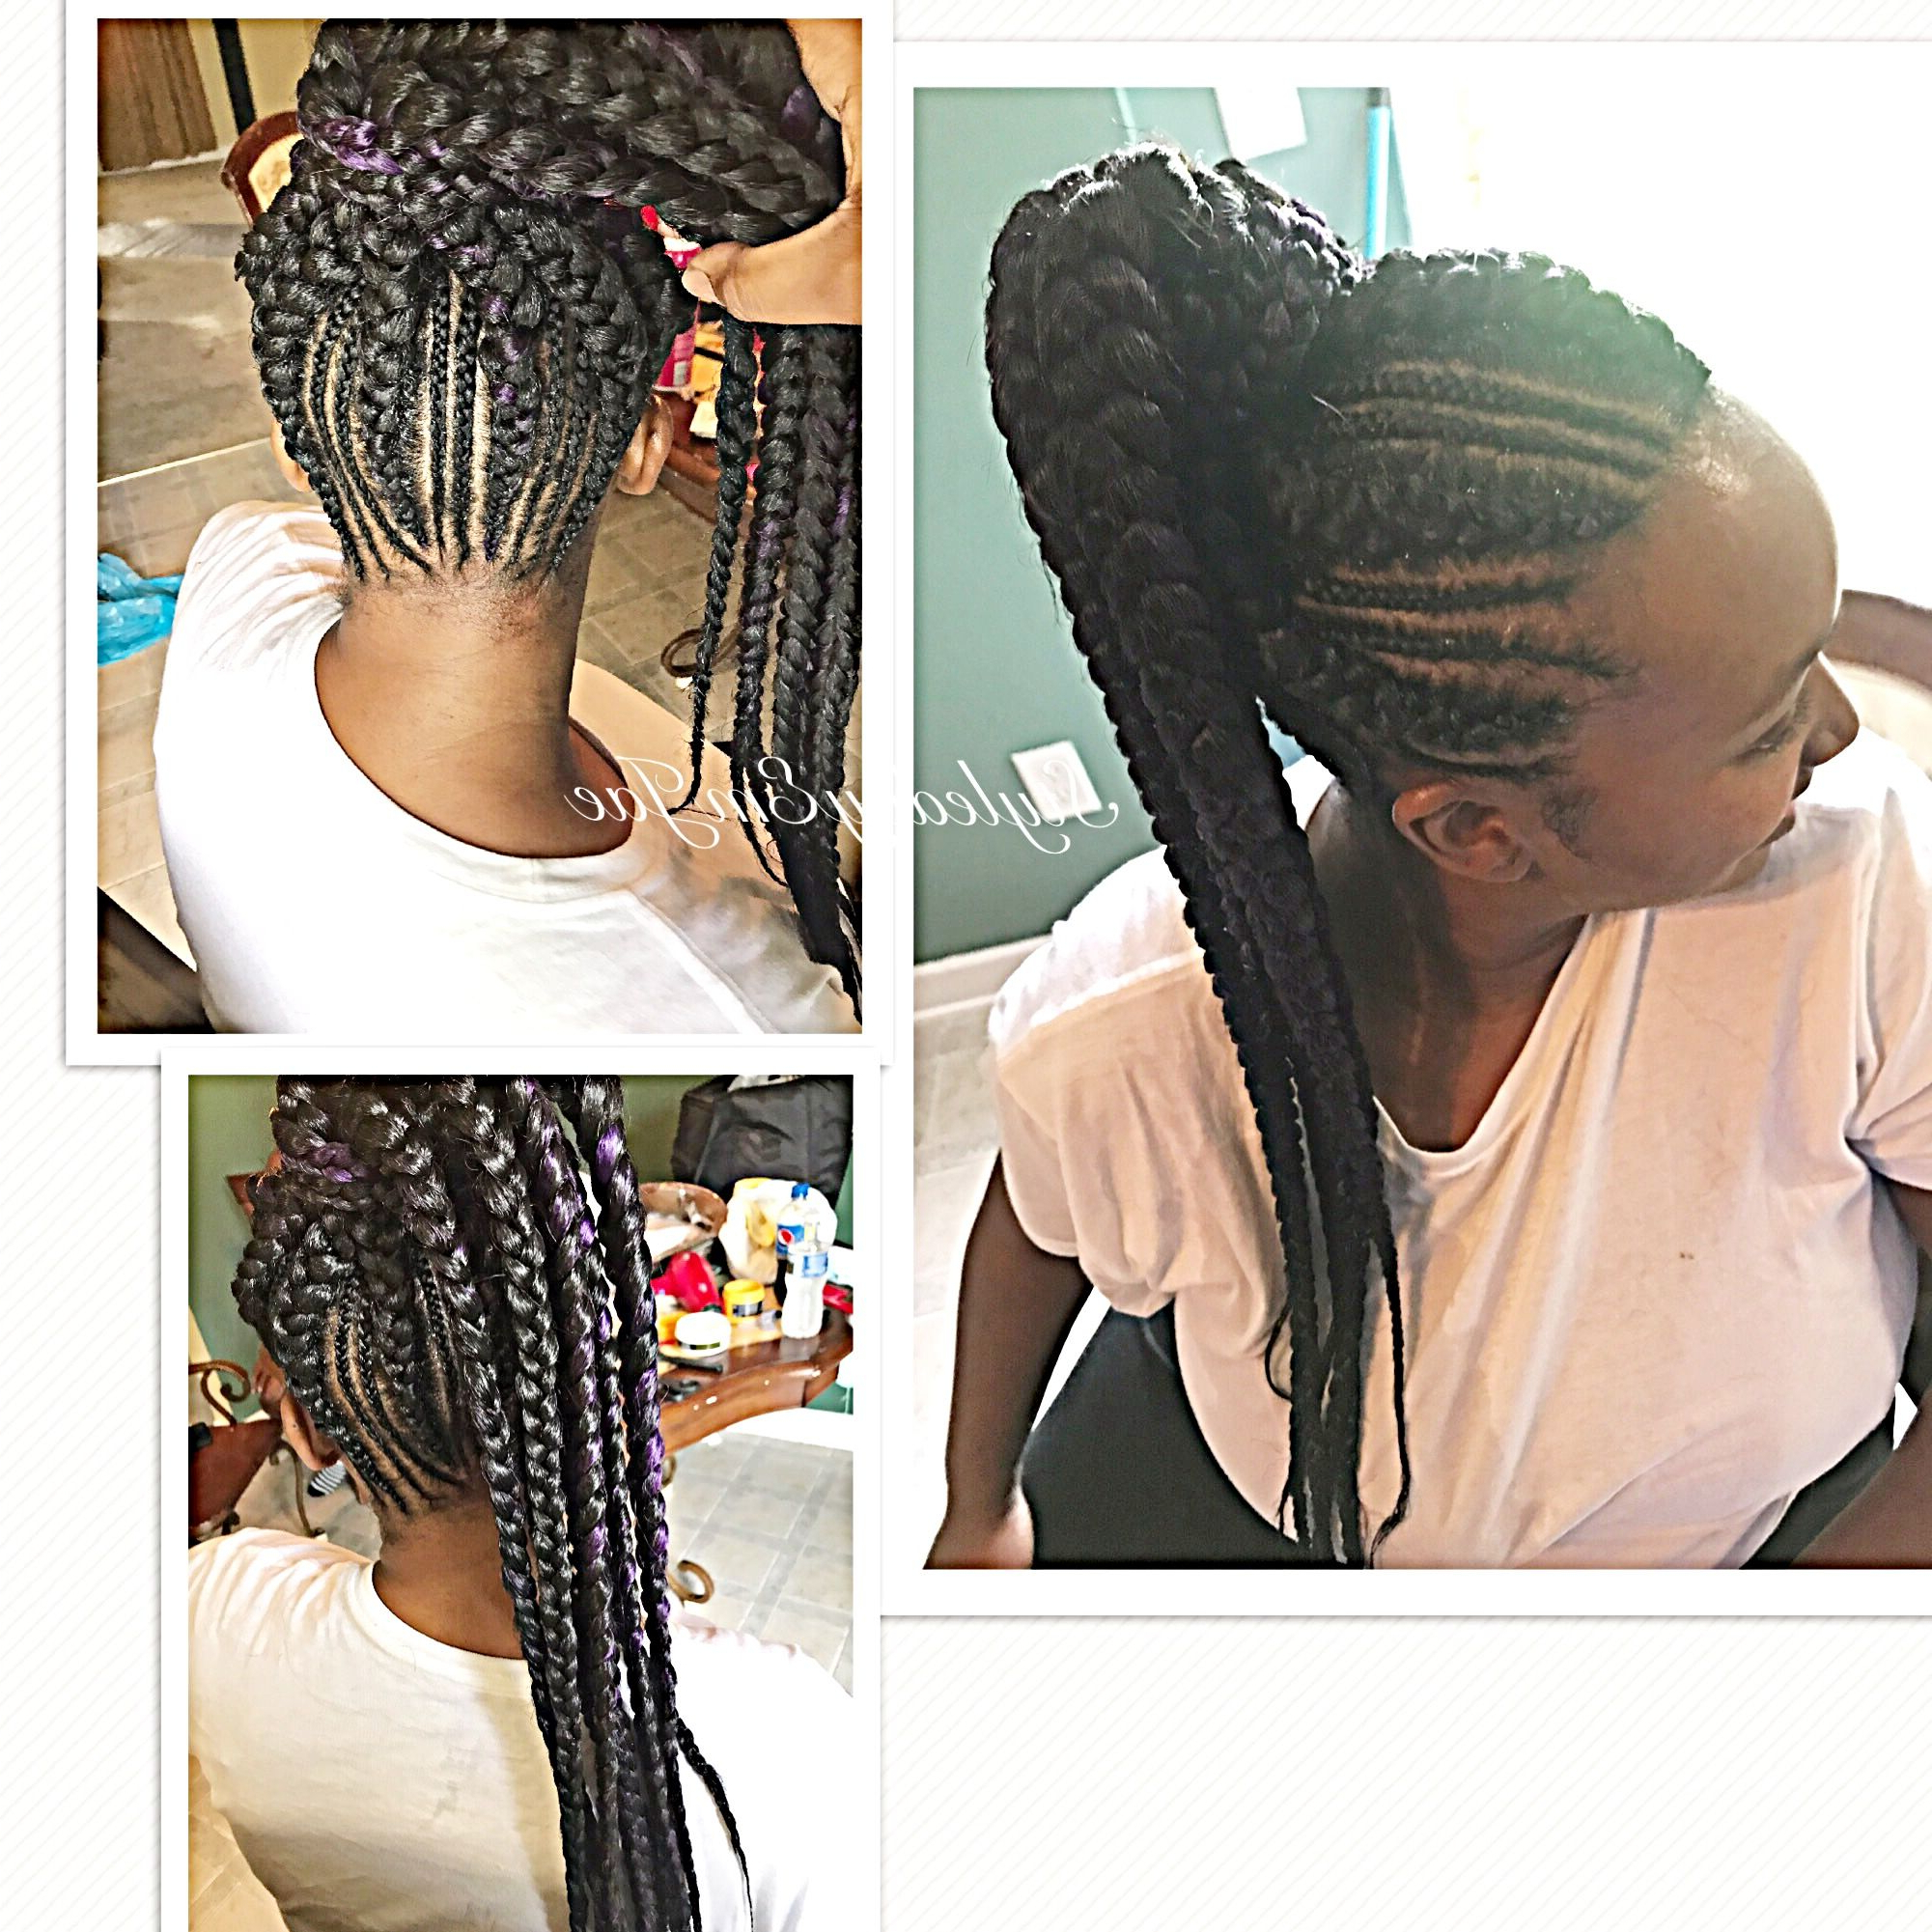 2020 Thin And Thick Cornrows Under Braid Hairstyles With Slim Thick High Ponytail Braids, Feed In Braids, Cornrows (View 2 of 20)